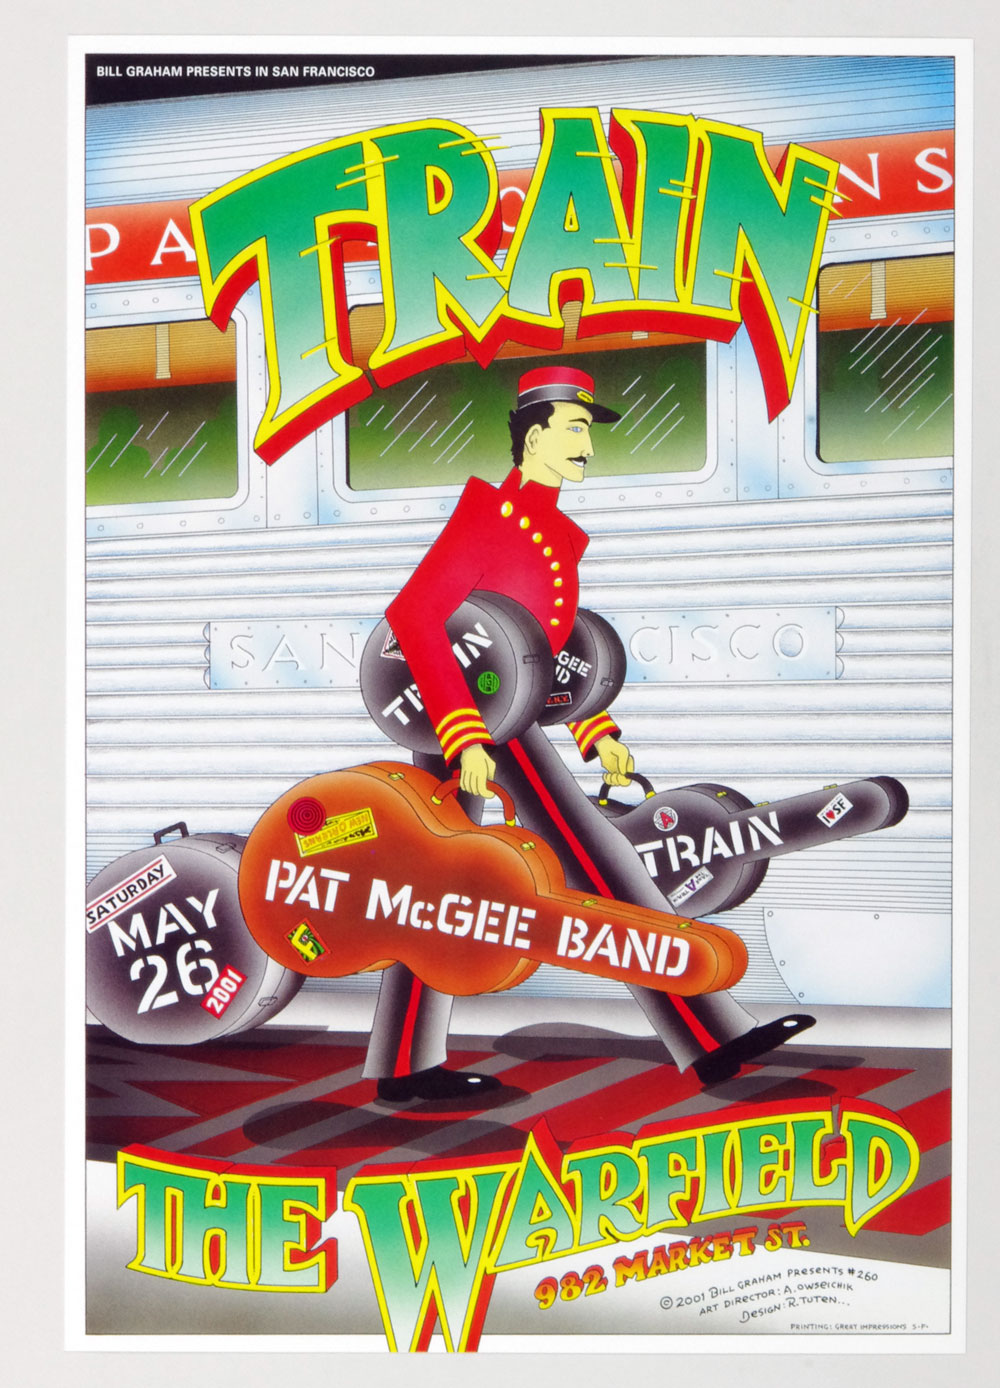 Bill Graham Presents Poster 2001 May 26 Train Pat McGee Band #260